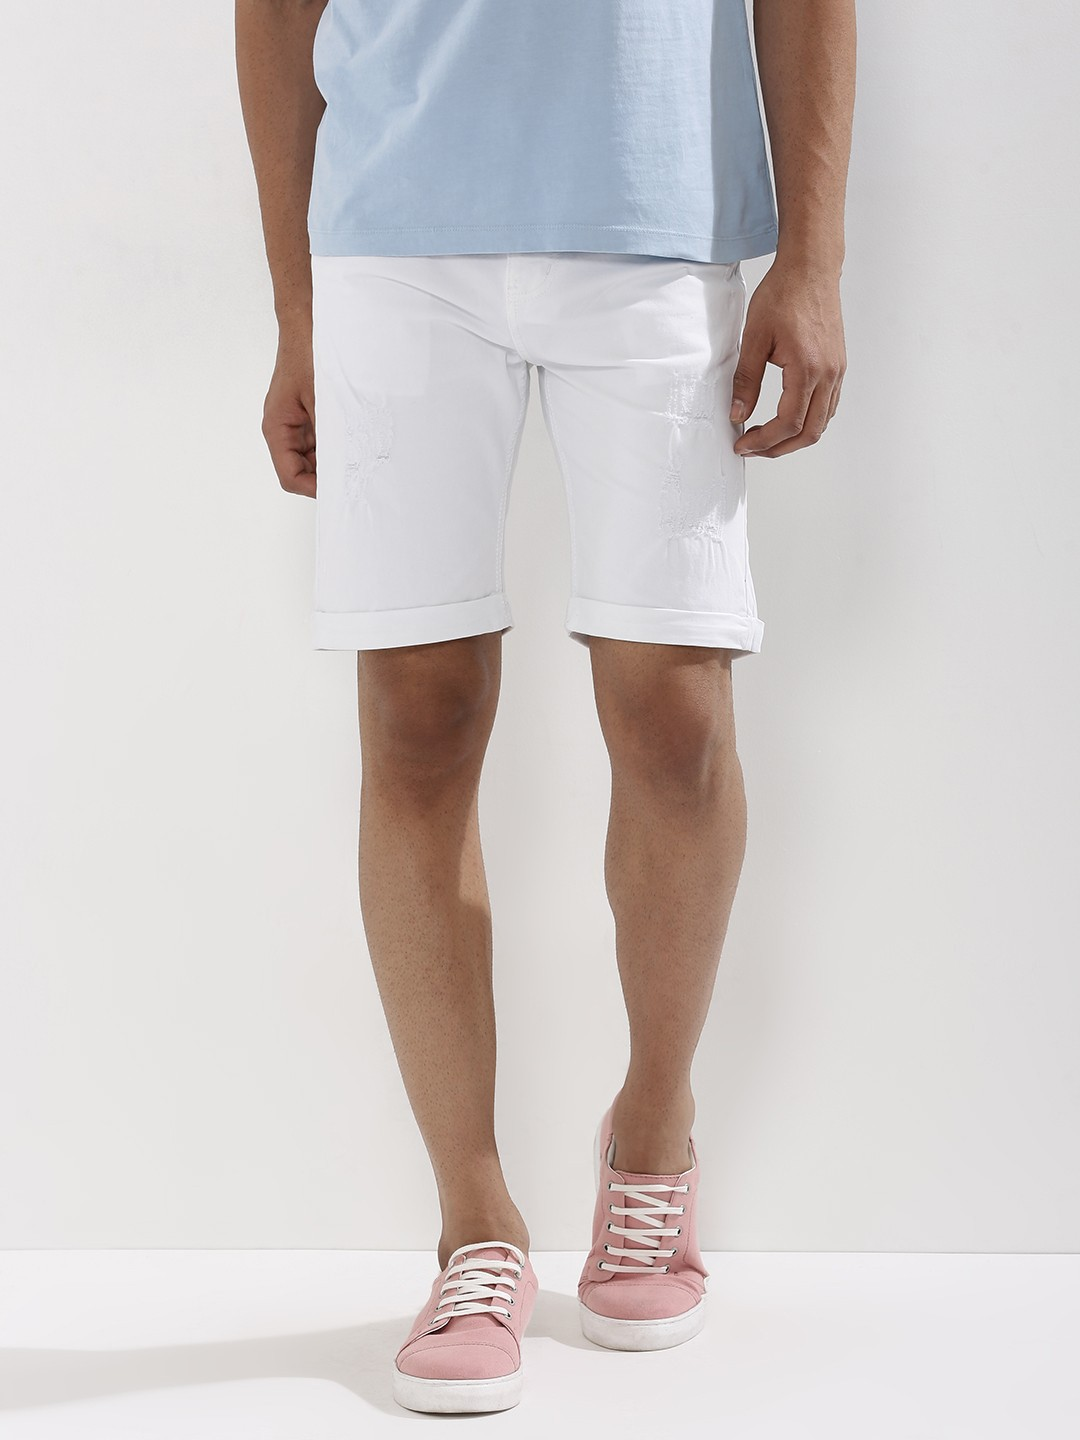 Buy KOOVS Ripped Slim Fit Shorts For Men - Men's White Shorts ...